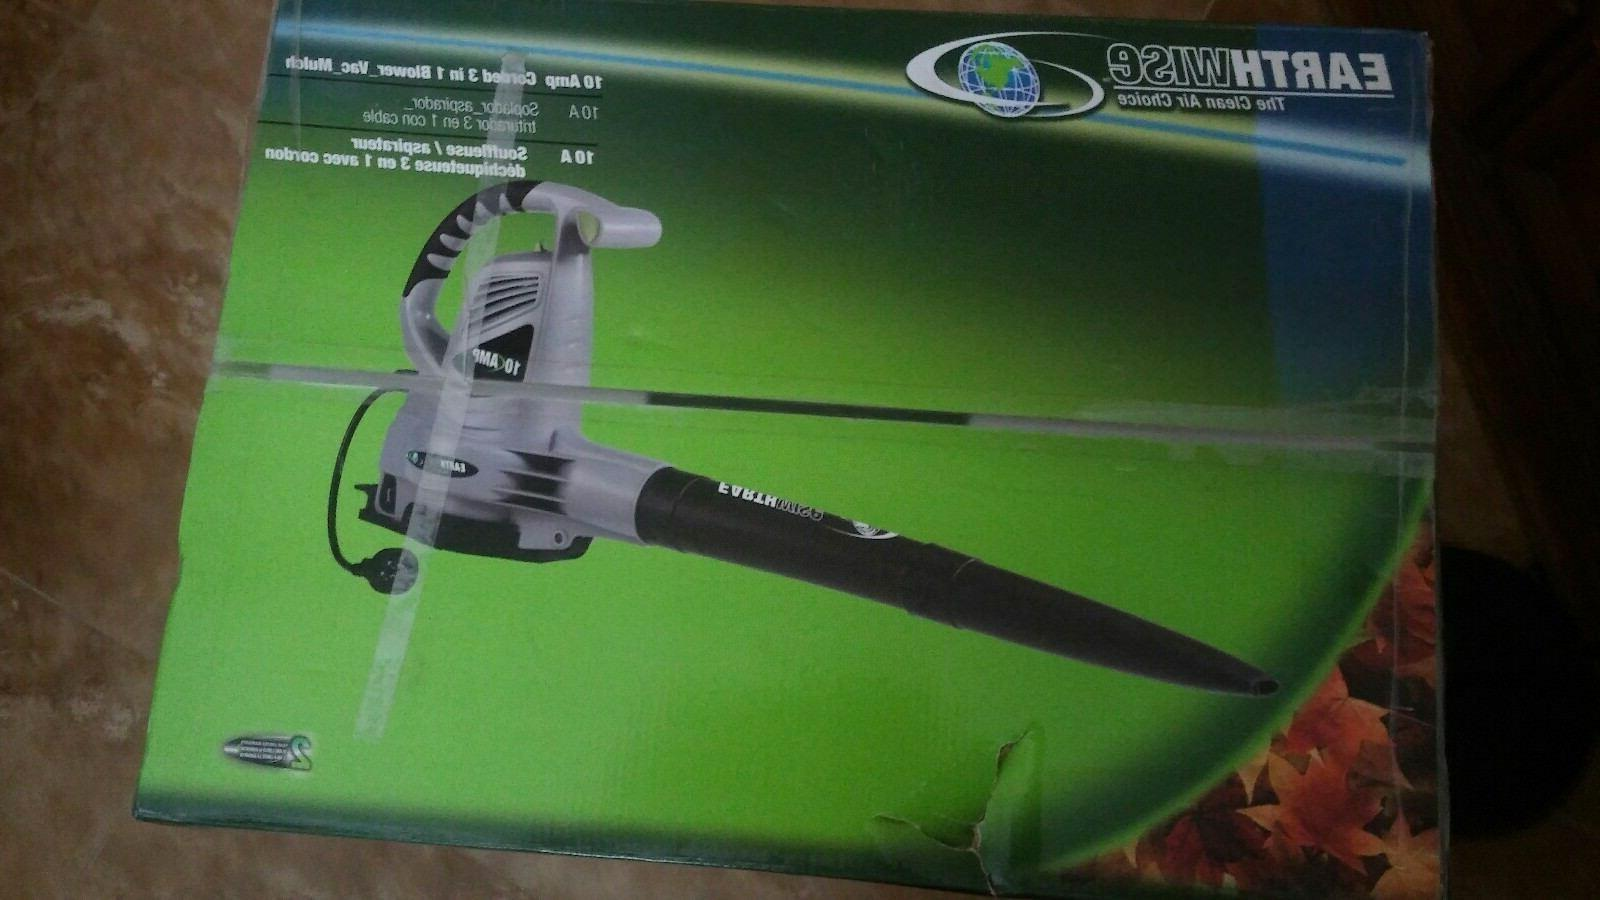 bvm21010 10 amp two speed corded electric